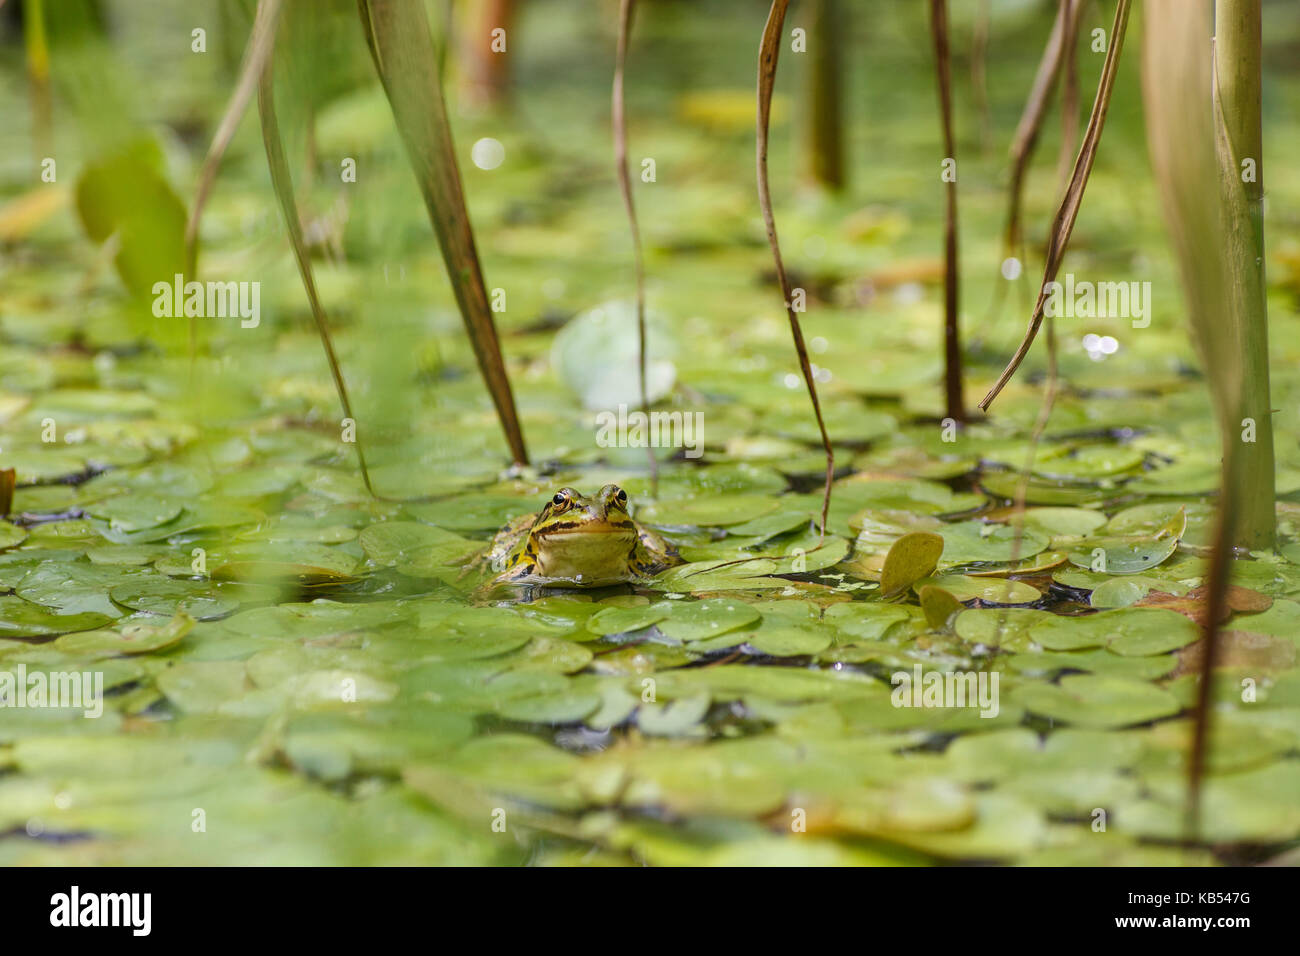 One unidentified species of Green Frogs (Pelophylax) perched among leaves of an unidentified plant in a puddle, - Stock Image